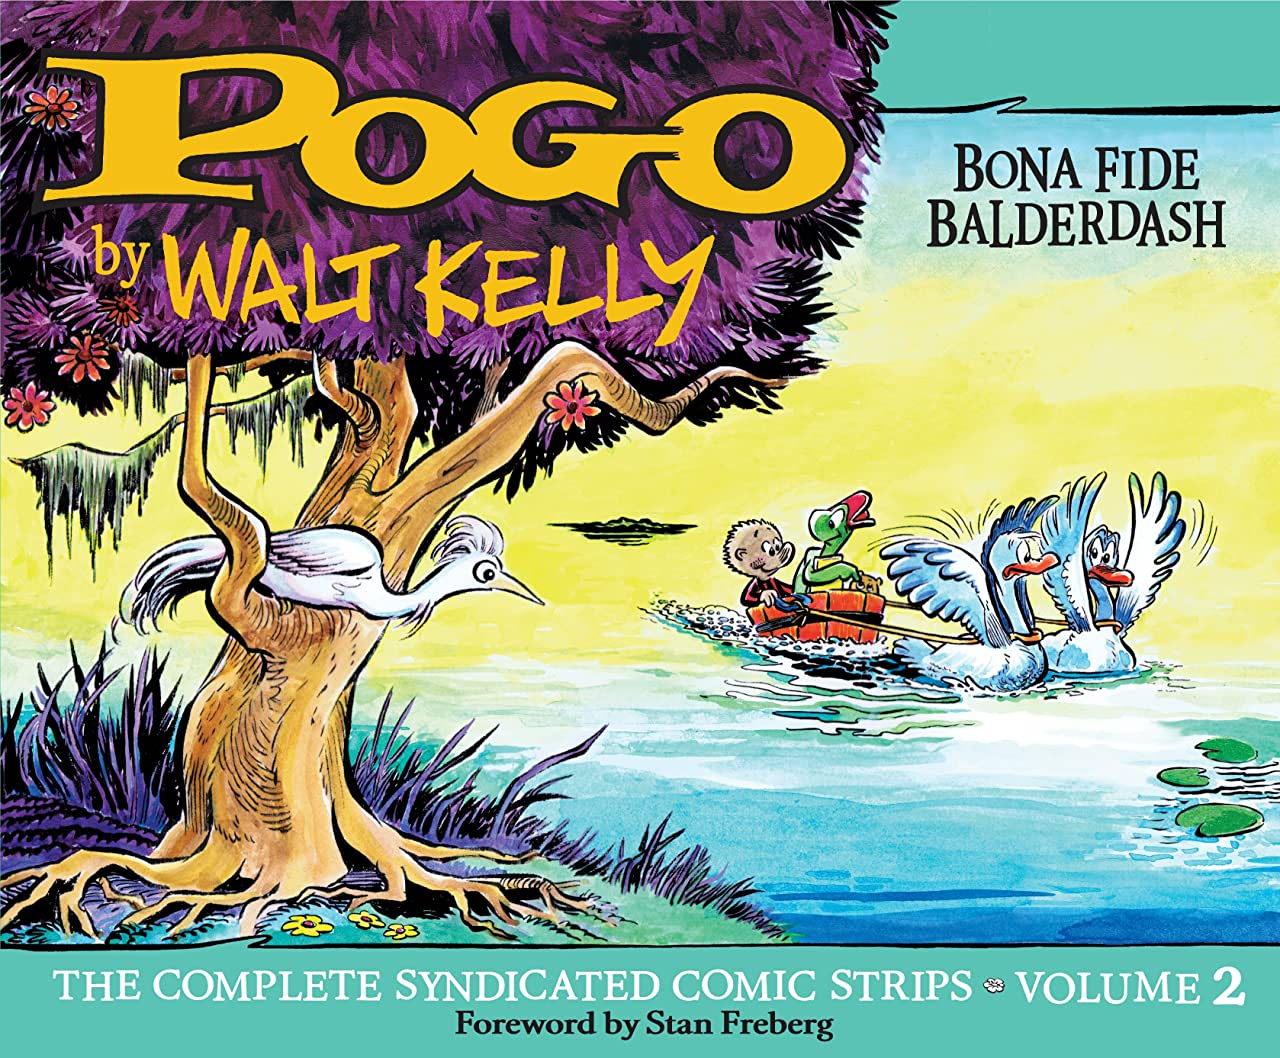 Pogo: The Complete Daily & Sunday Comic Strips Vol. 2: Bona Fide Balderdash